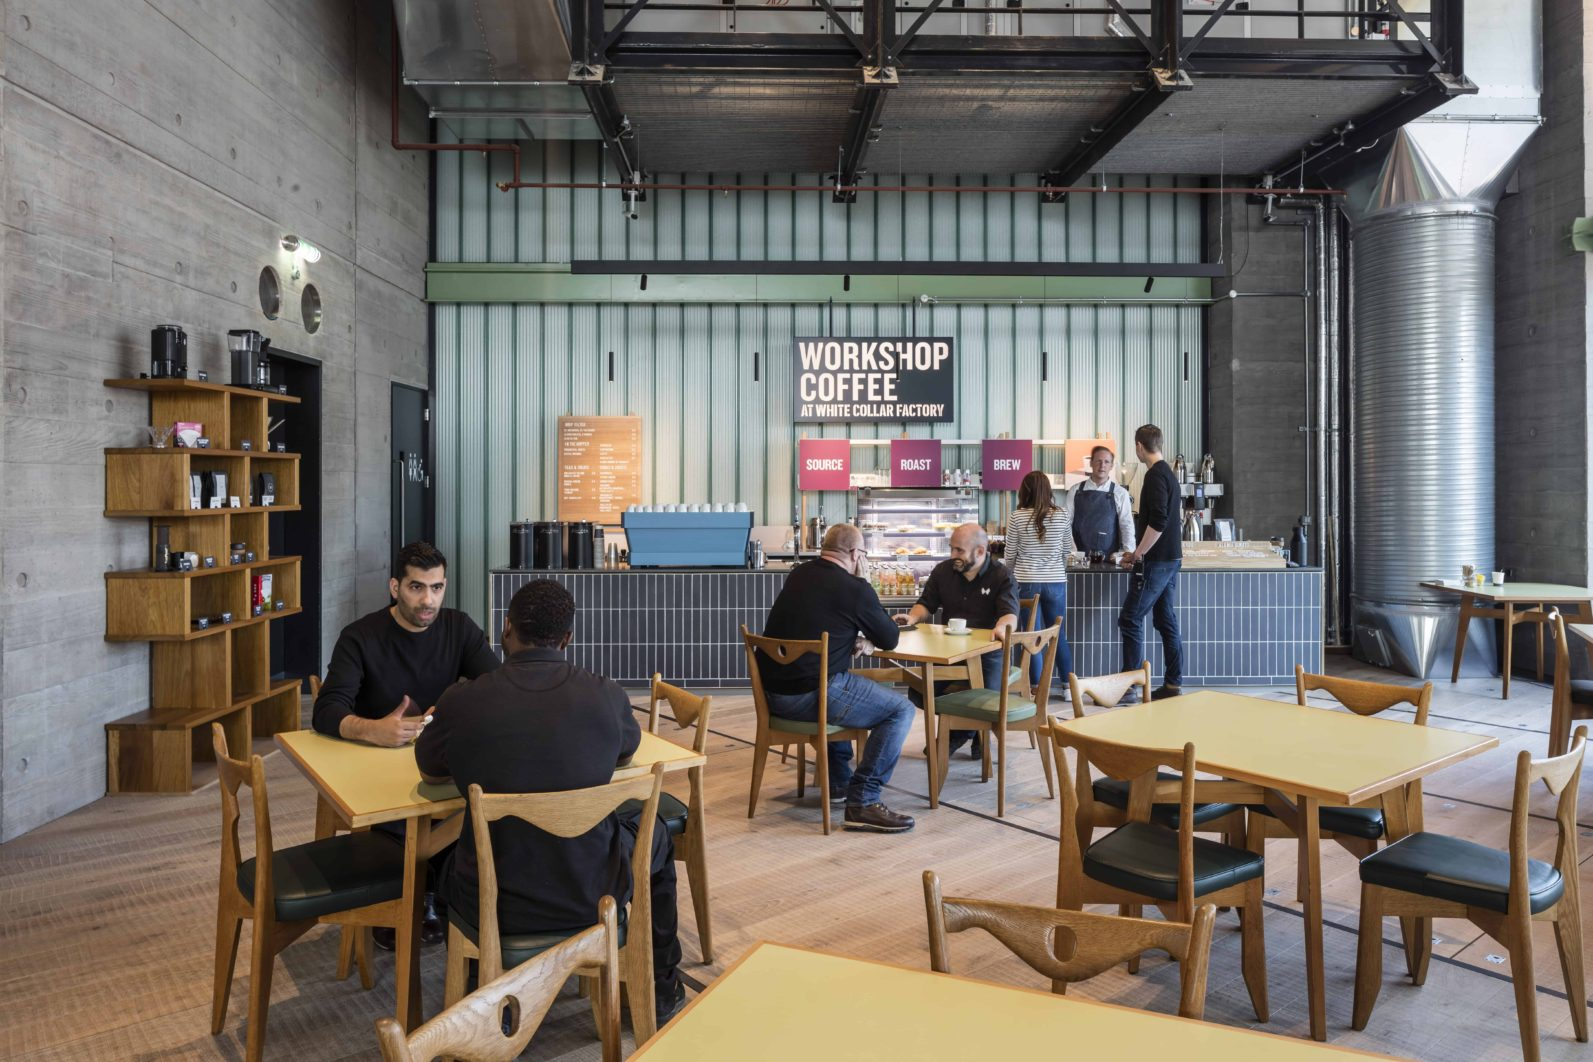 The cafe area of White Collar Factory